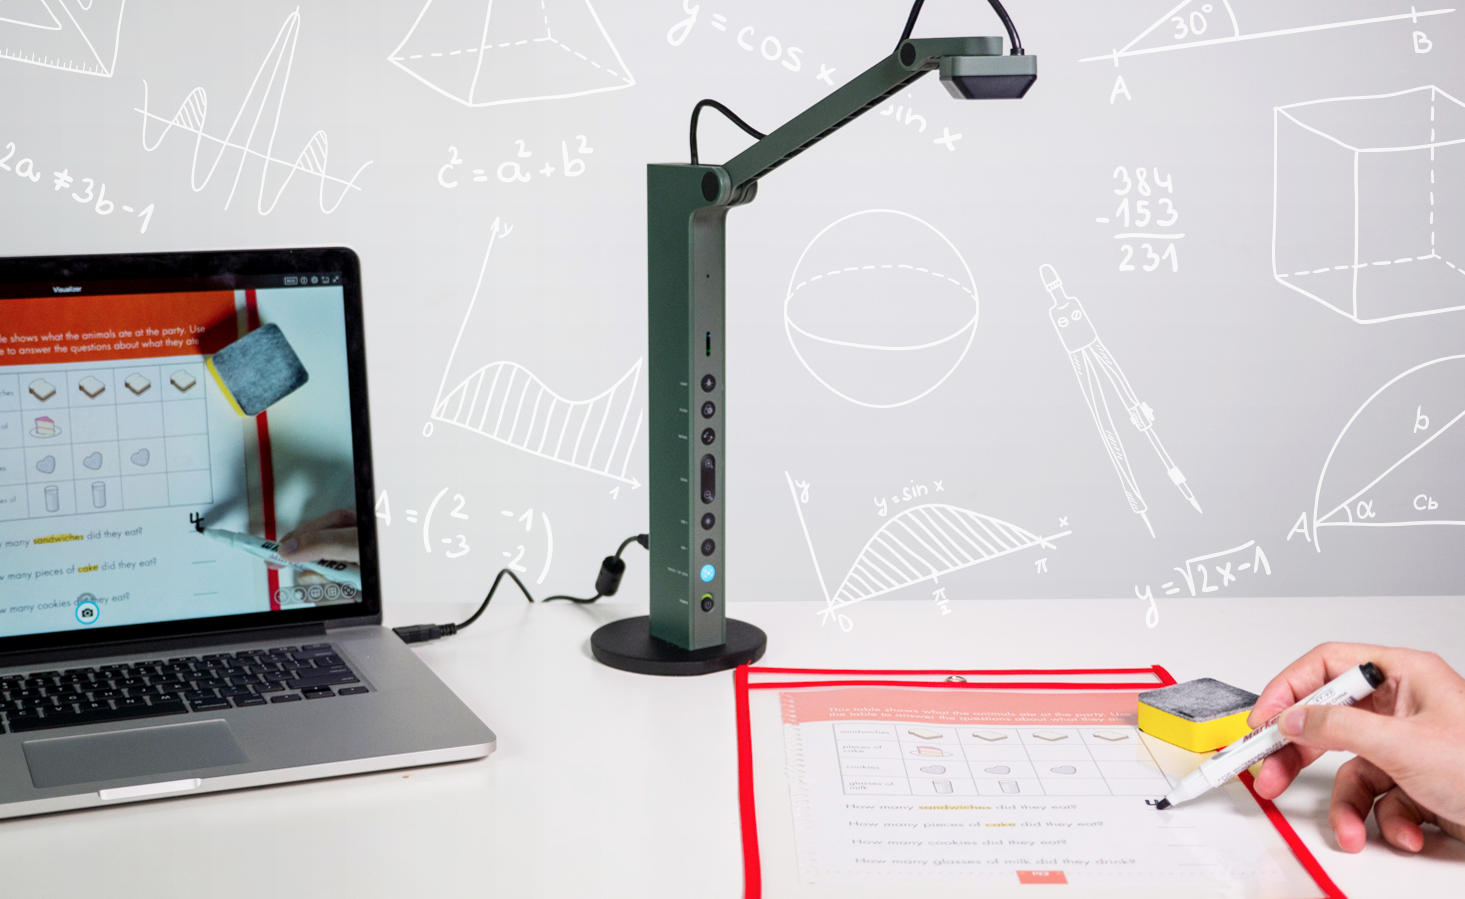 Using the pocket sleeve together with an IPEVO VZ-R document camera.